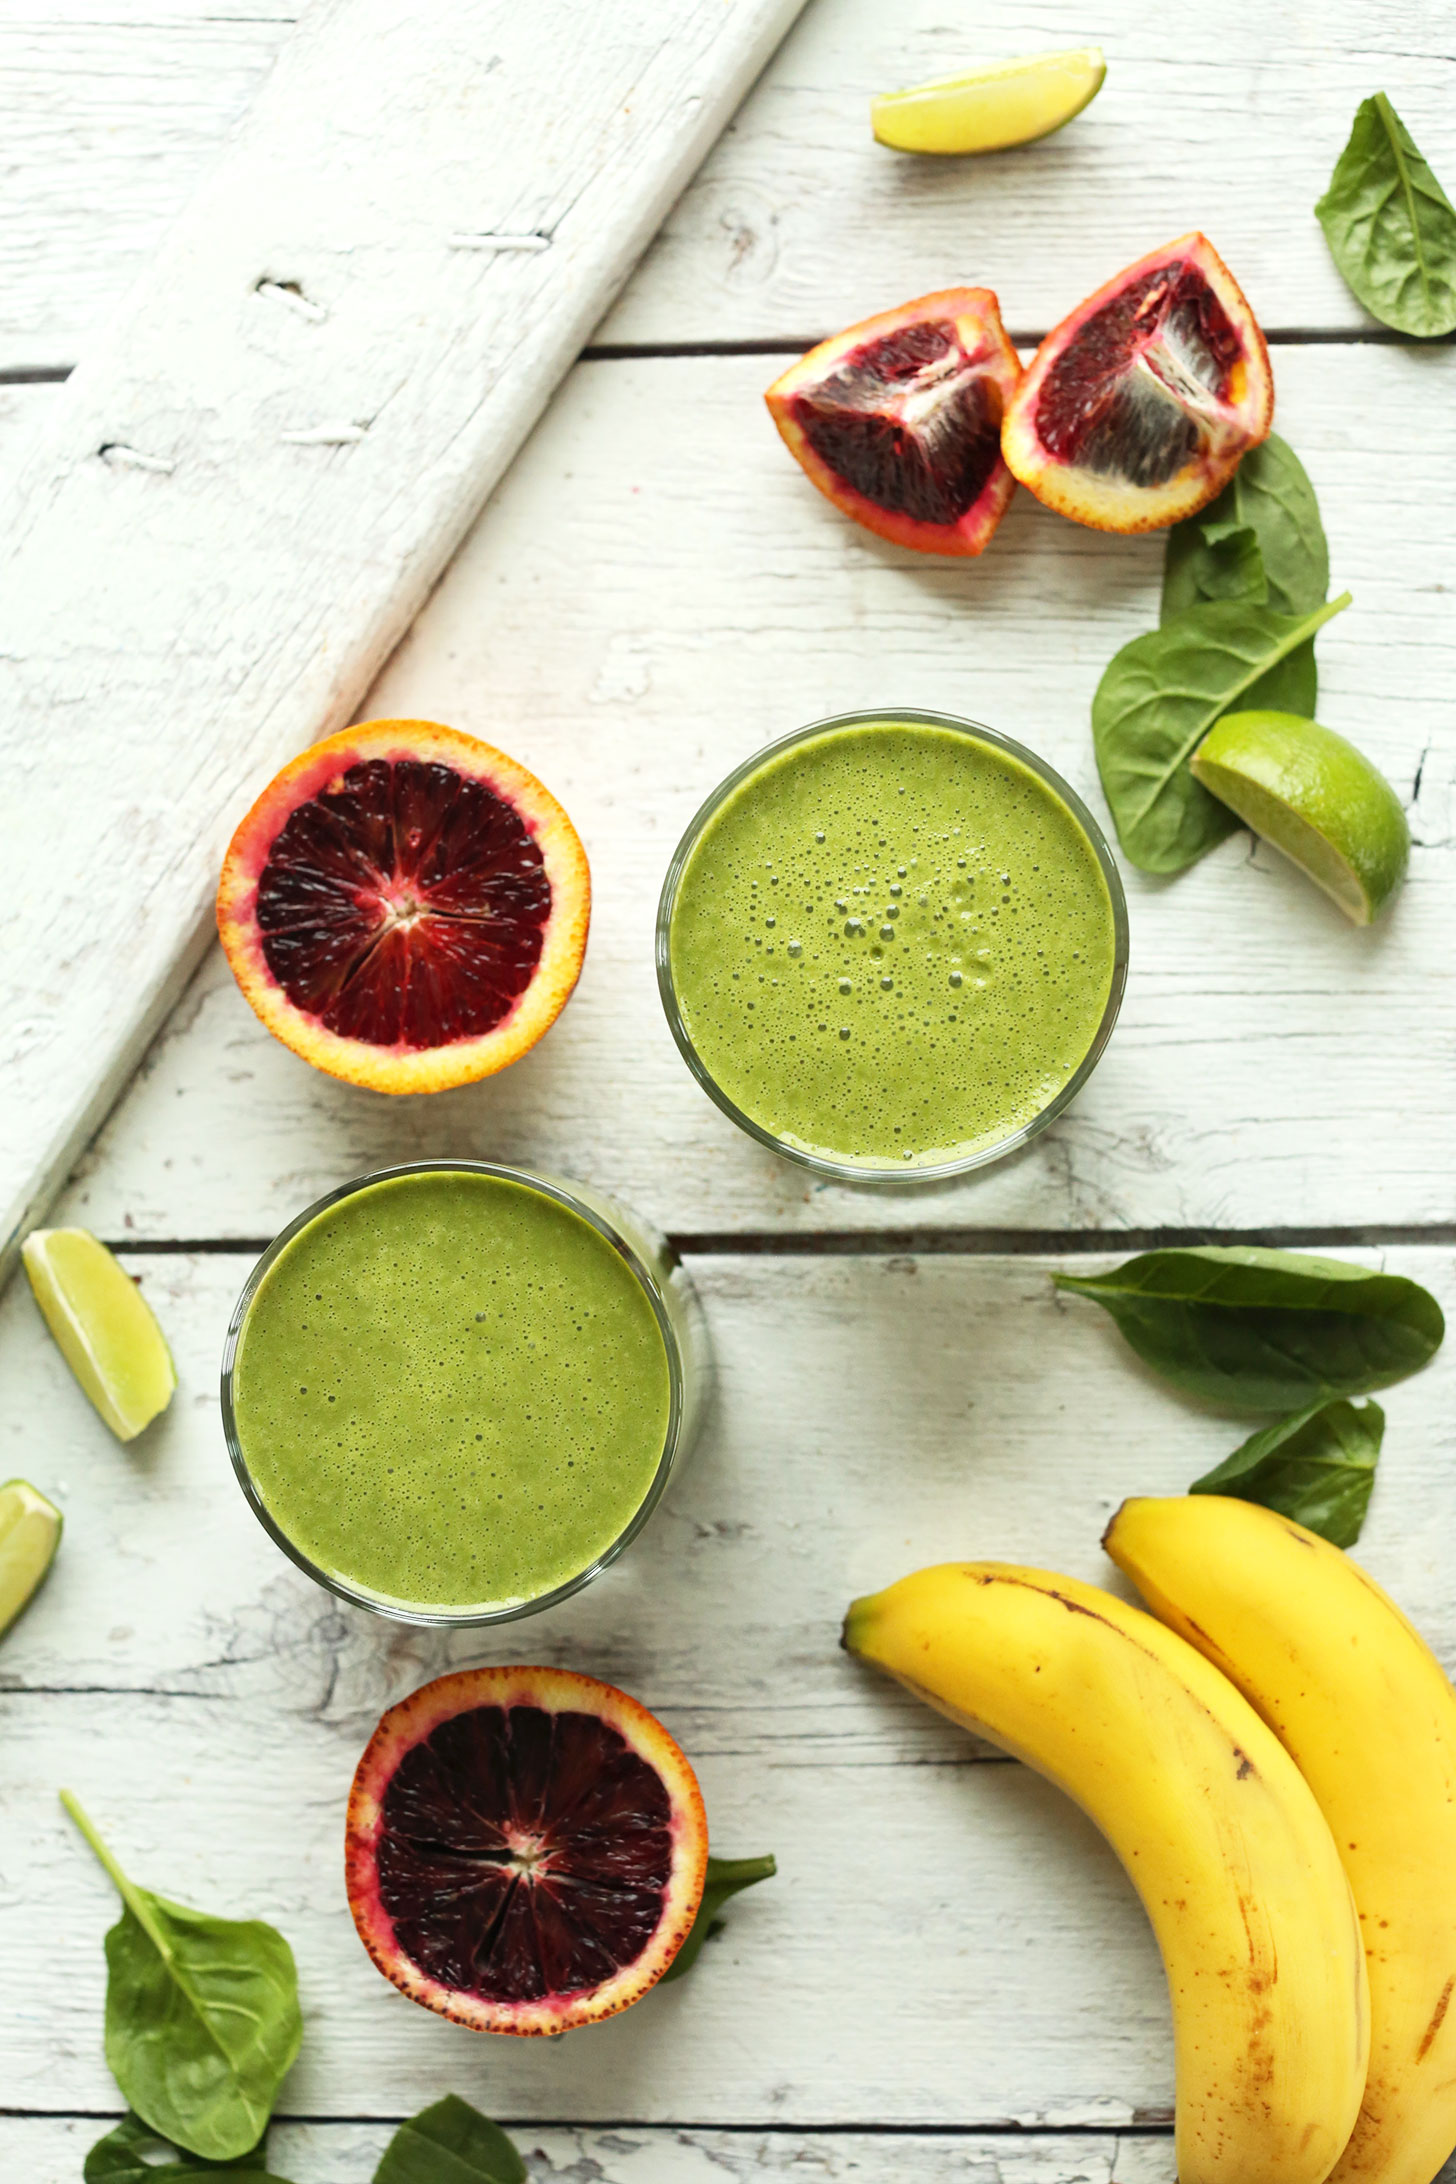 Two glasses of vegan Blood Orange Green Smoothie made with blood oranges, lime, spinach, and bananas